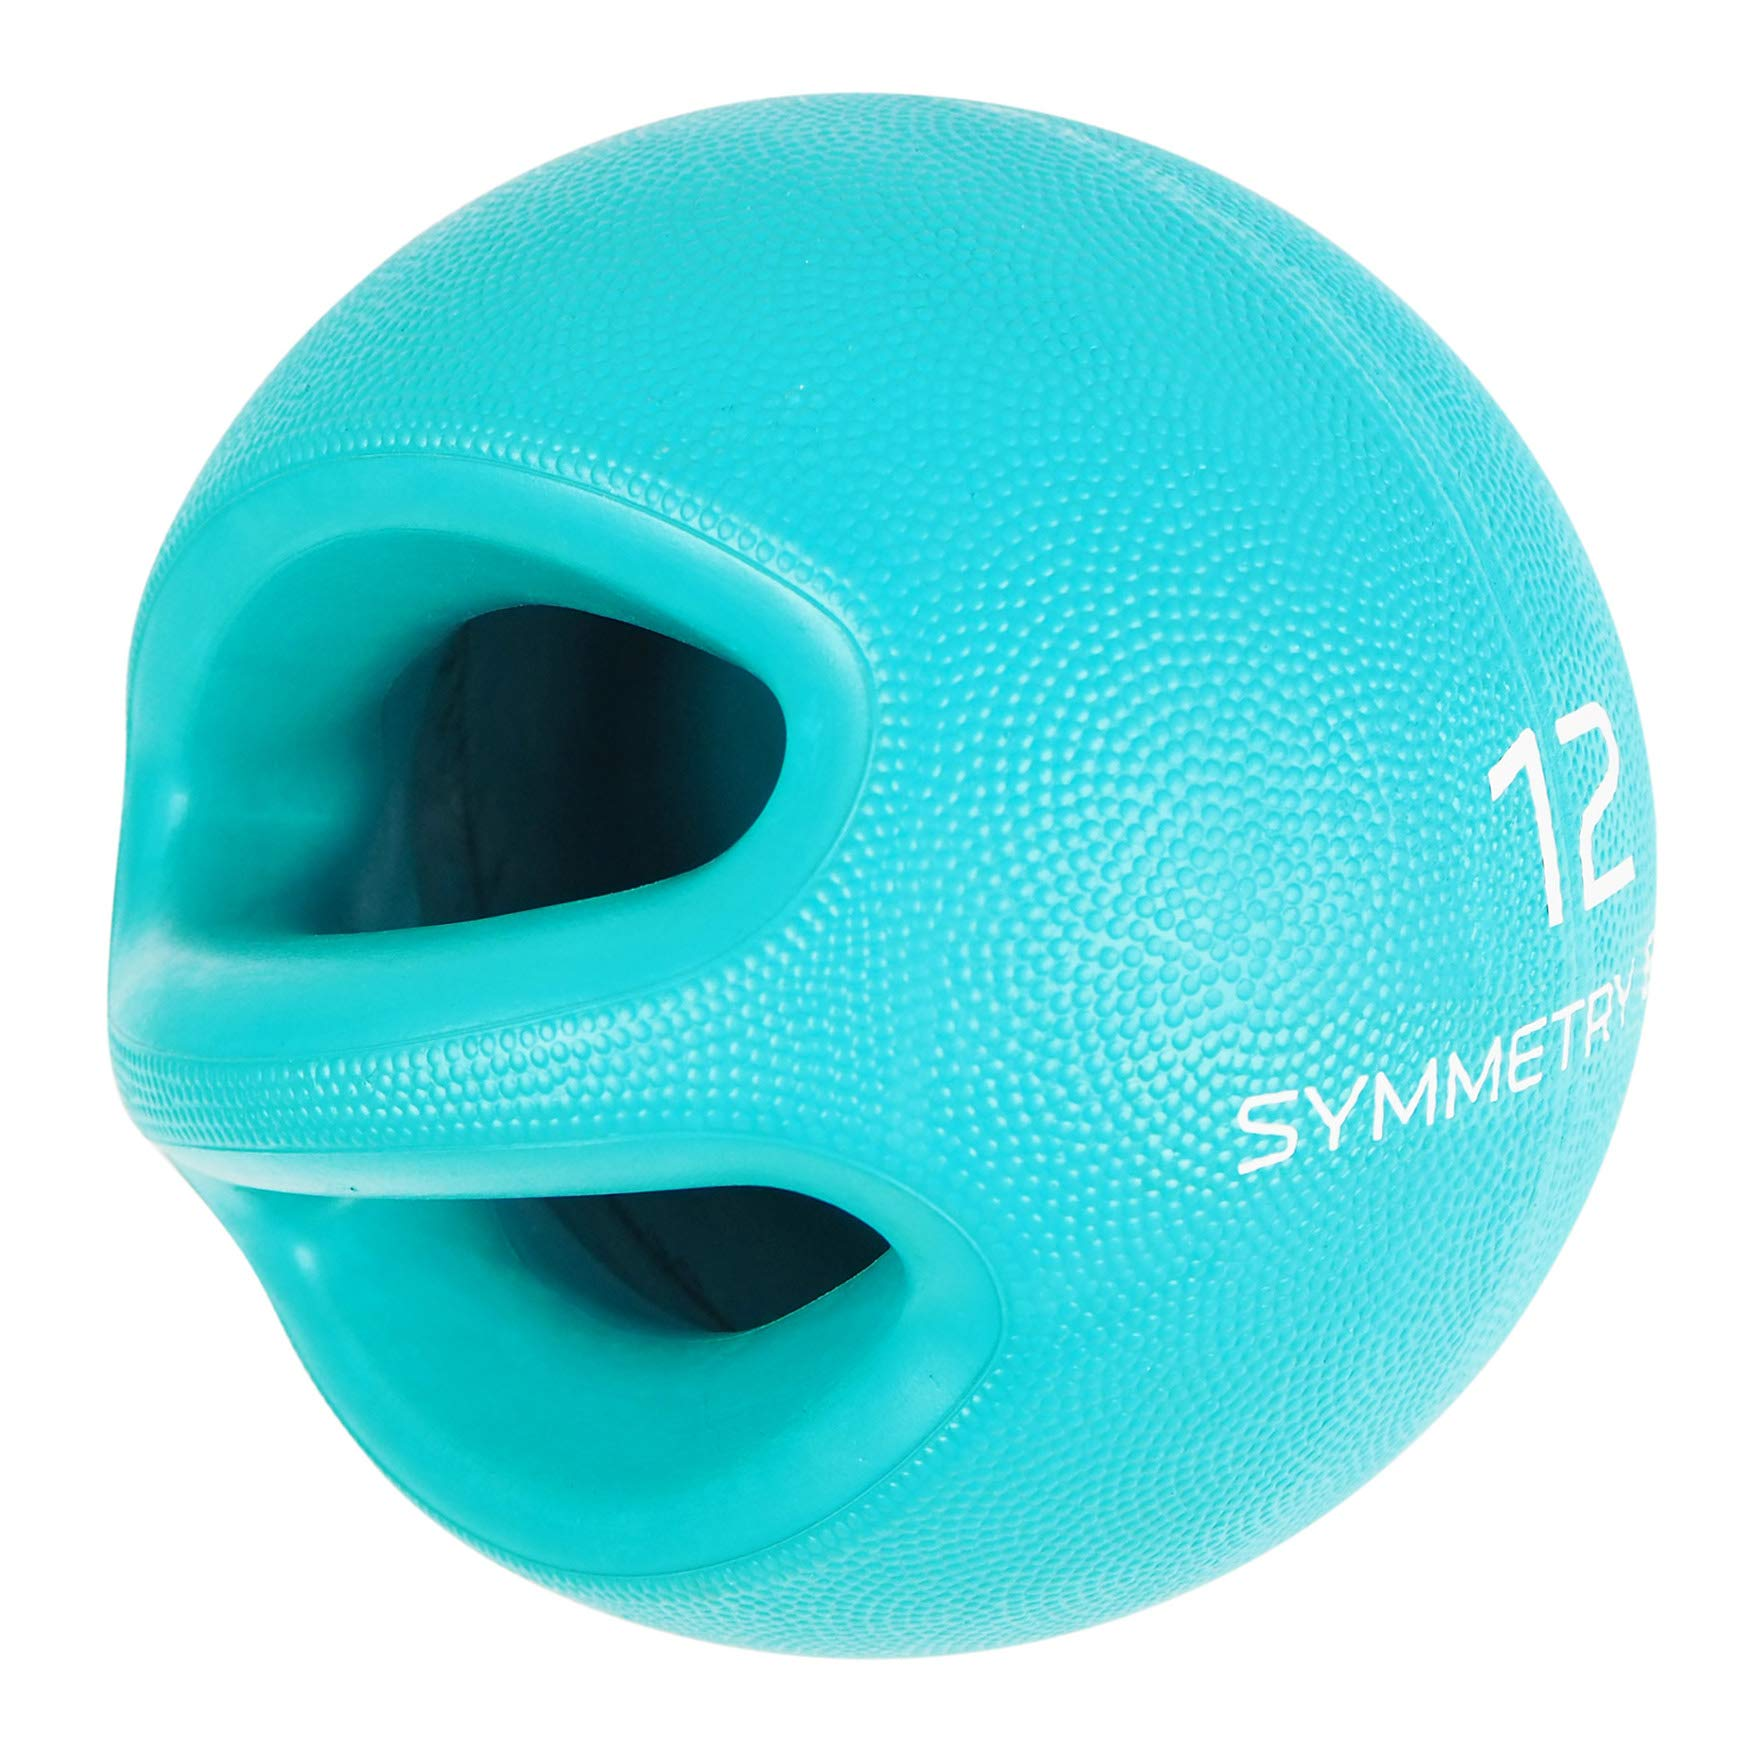 Smart Body Symmetry Ball - Patented Dual Handled Medicine Ball for Core Strength (12-Pound Teal)